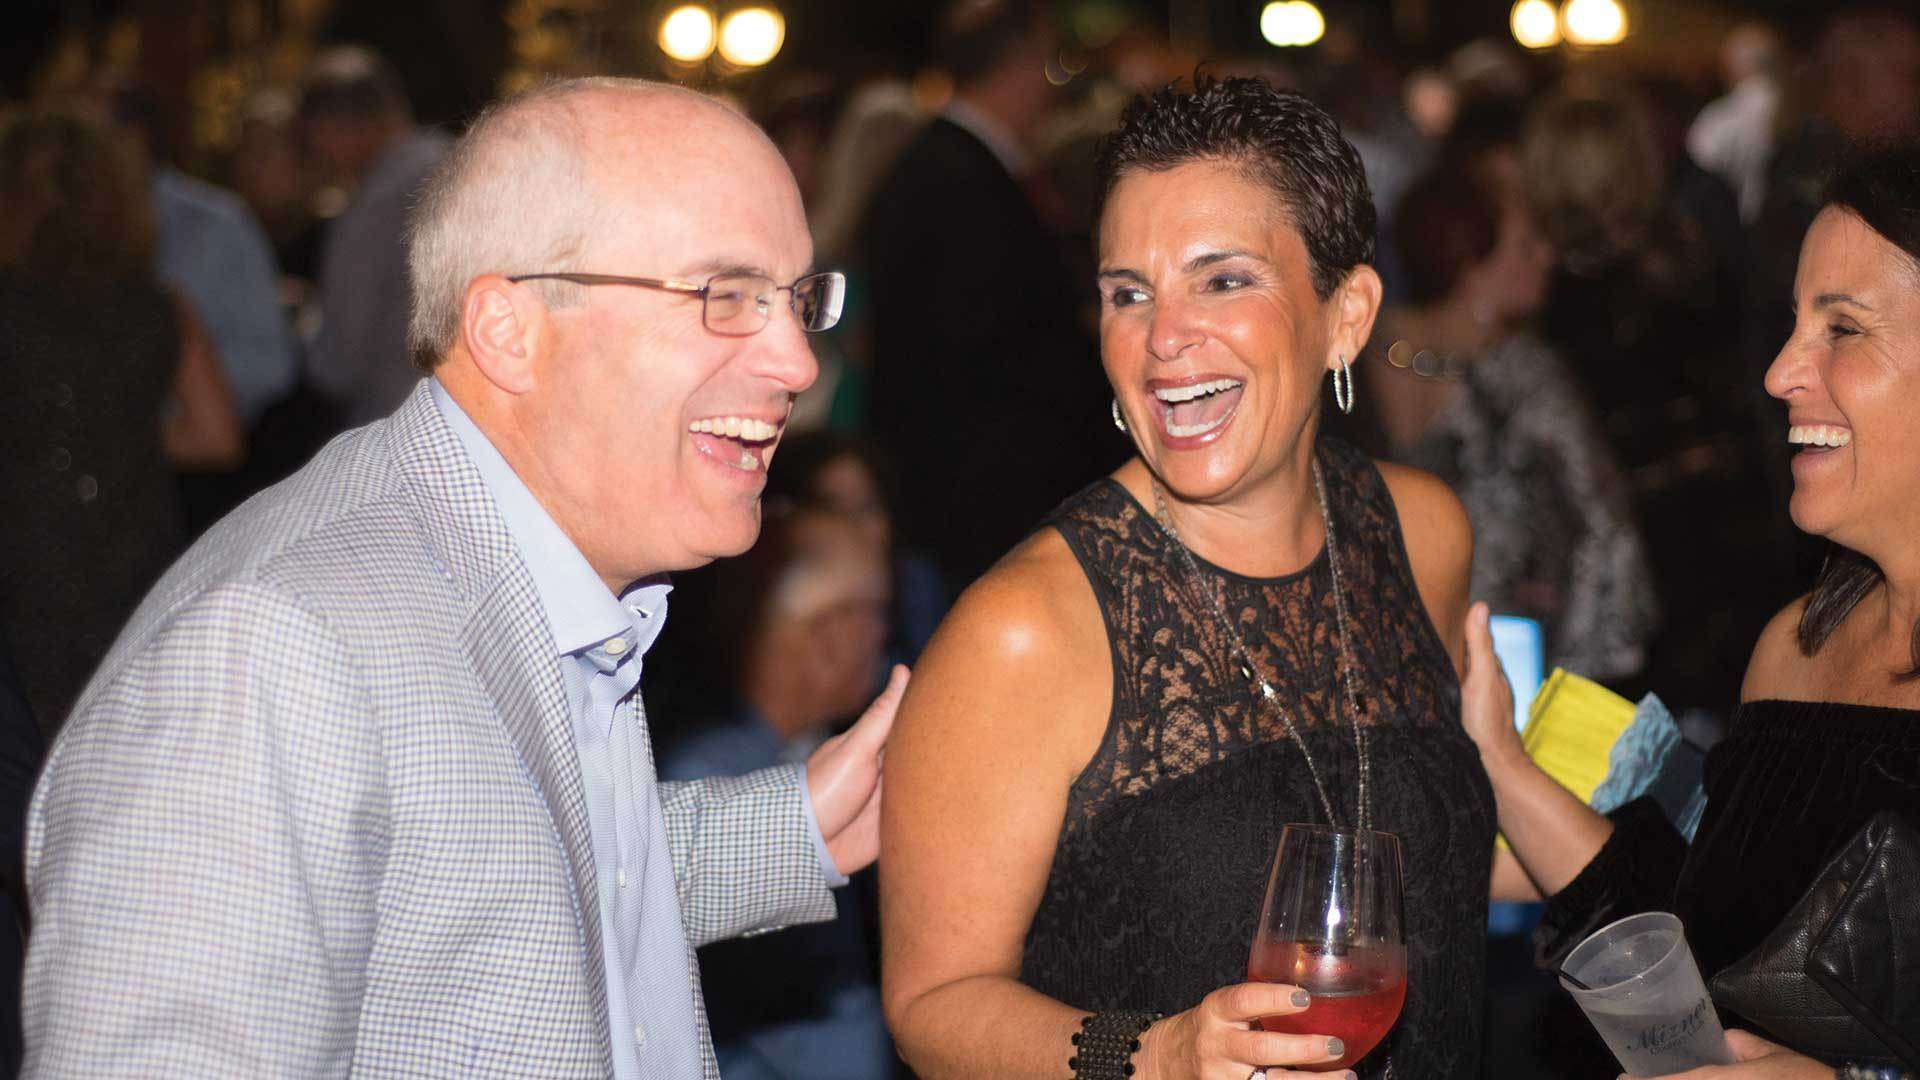 mizner-country-club-gallery-social-event-3